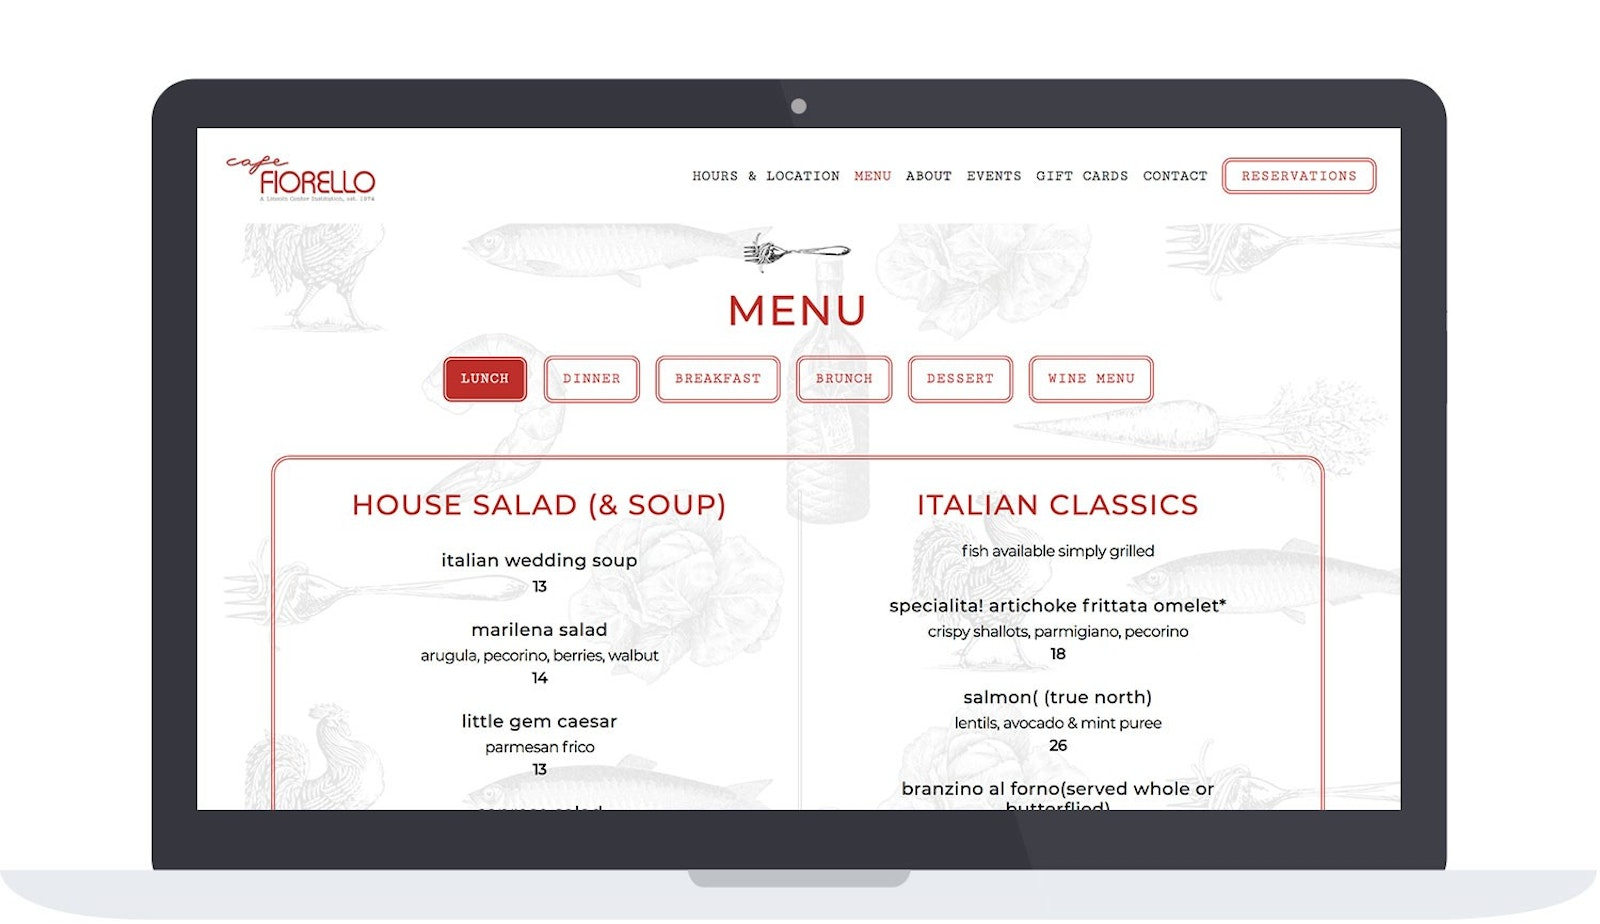 Cafe Fiorello Menu